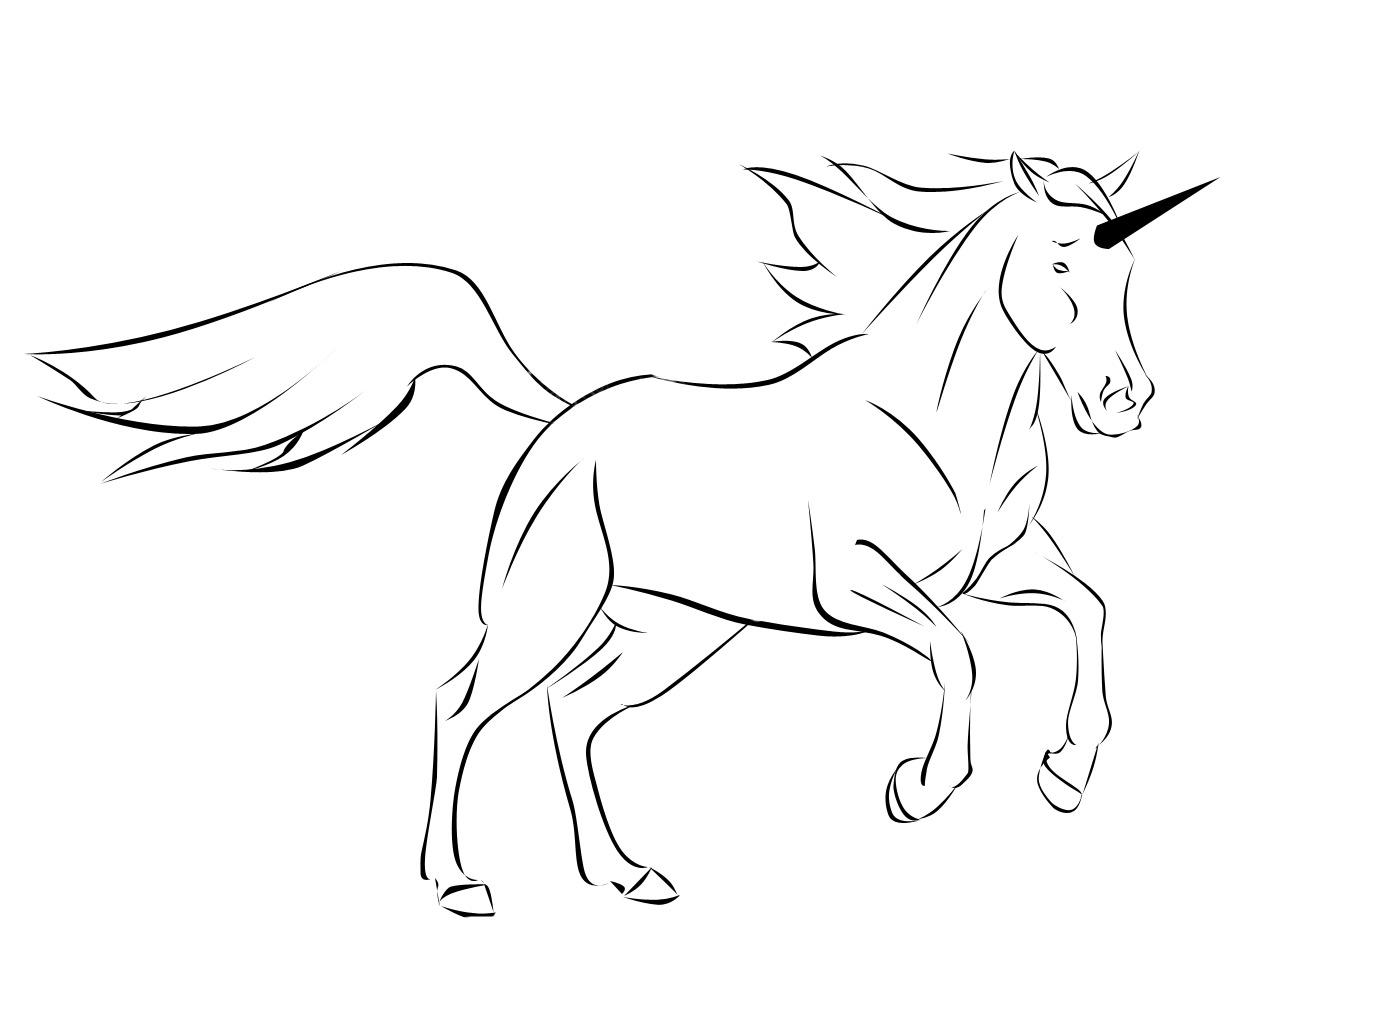 Line Art Unicorn : Unicorn lineart by lady akyashaa on deviantart